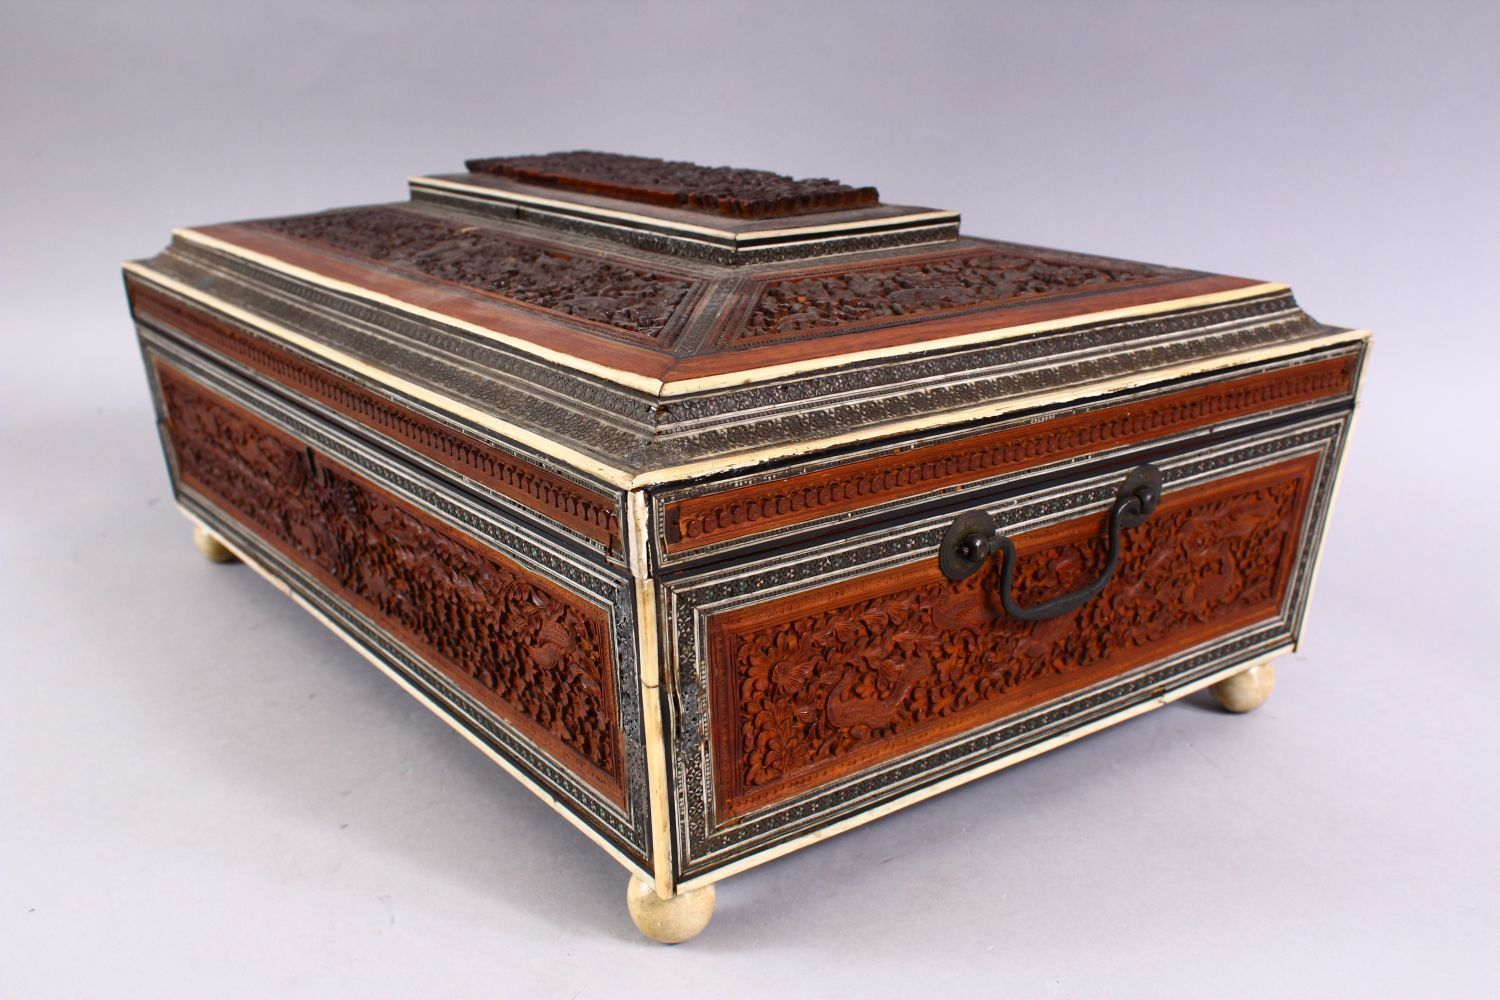 A 19TH CENTURY ANGLO INDIAN INLAID LIDDED SEWING BOX, with carved wood depicting figures and animals - Image 2 of 10